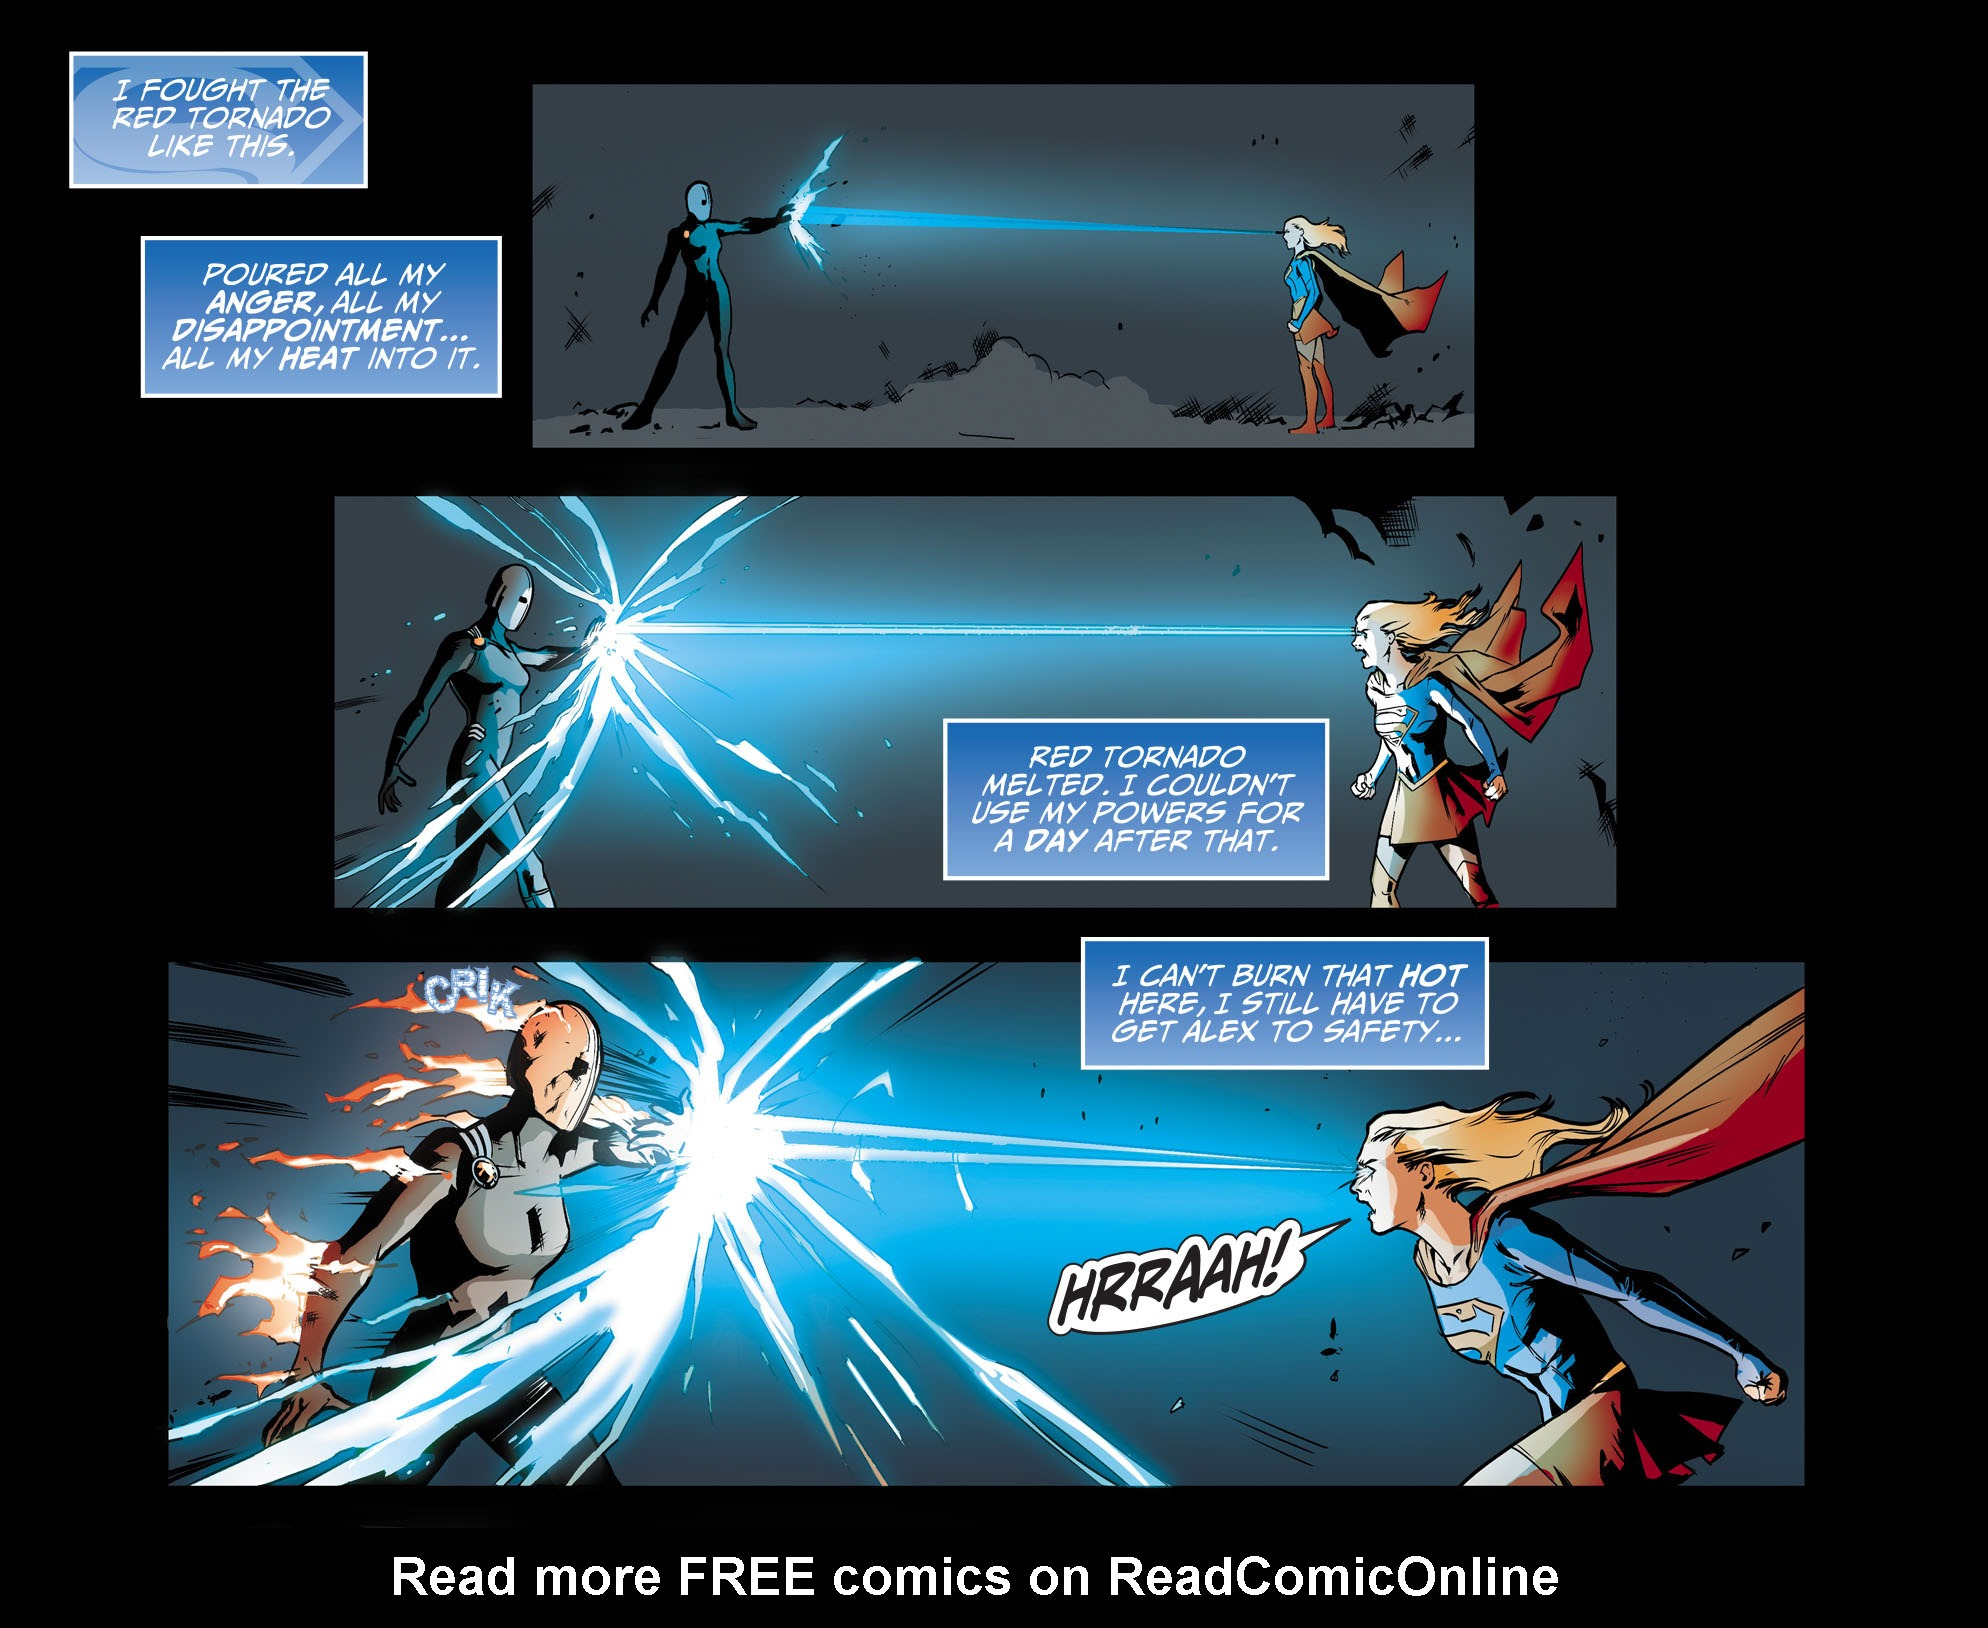 Read online Adventures of Supergirl comic -  Issue #9 - 15